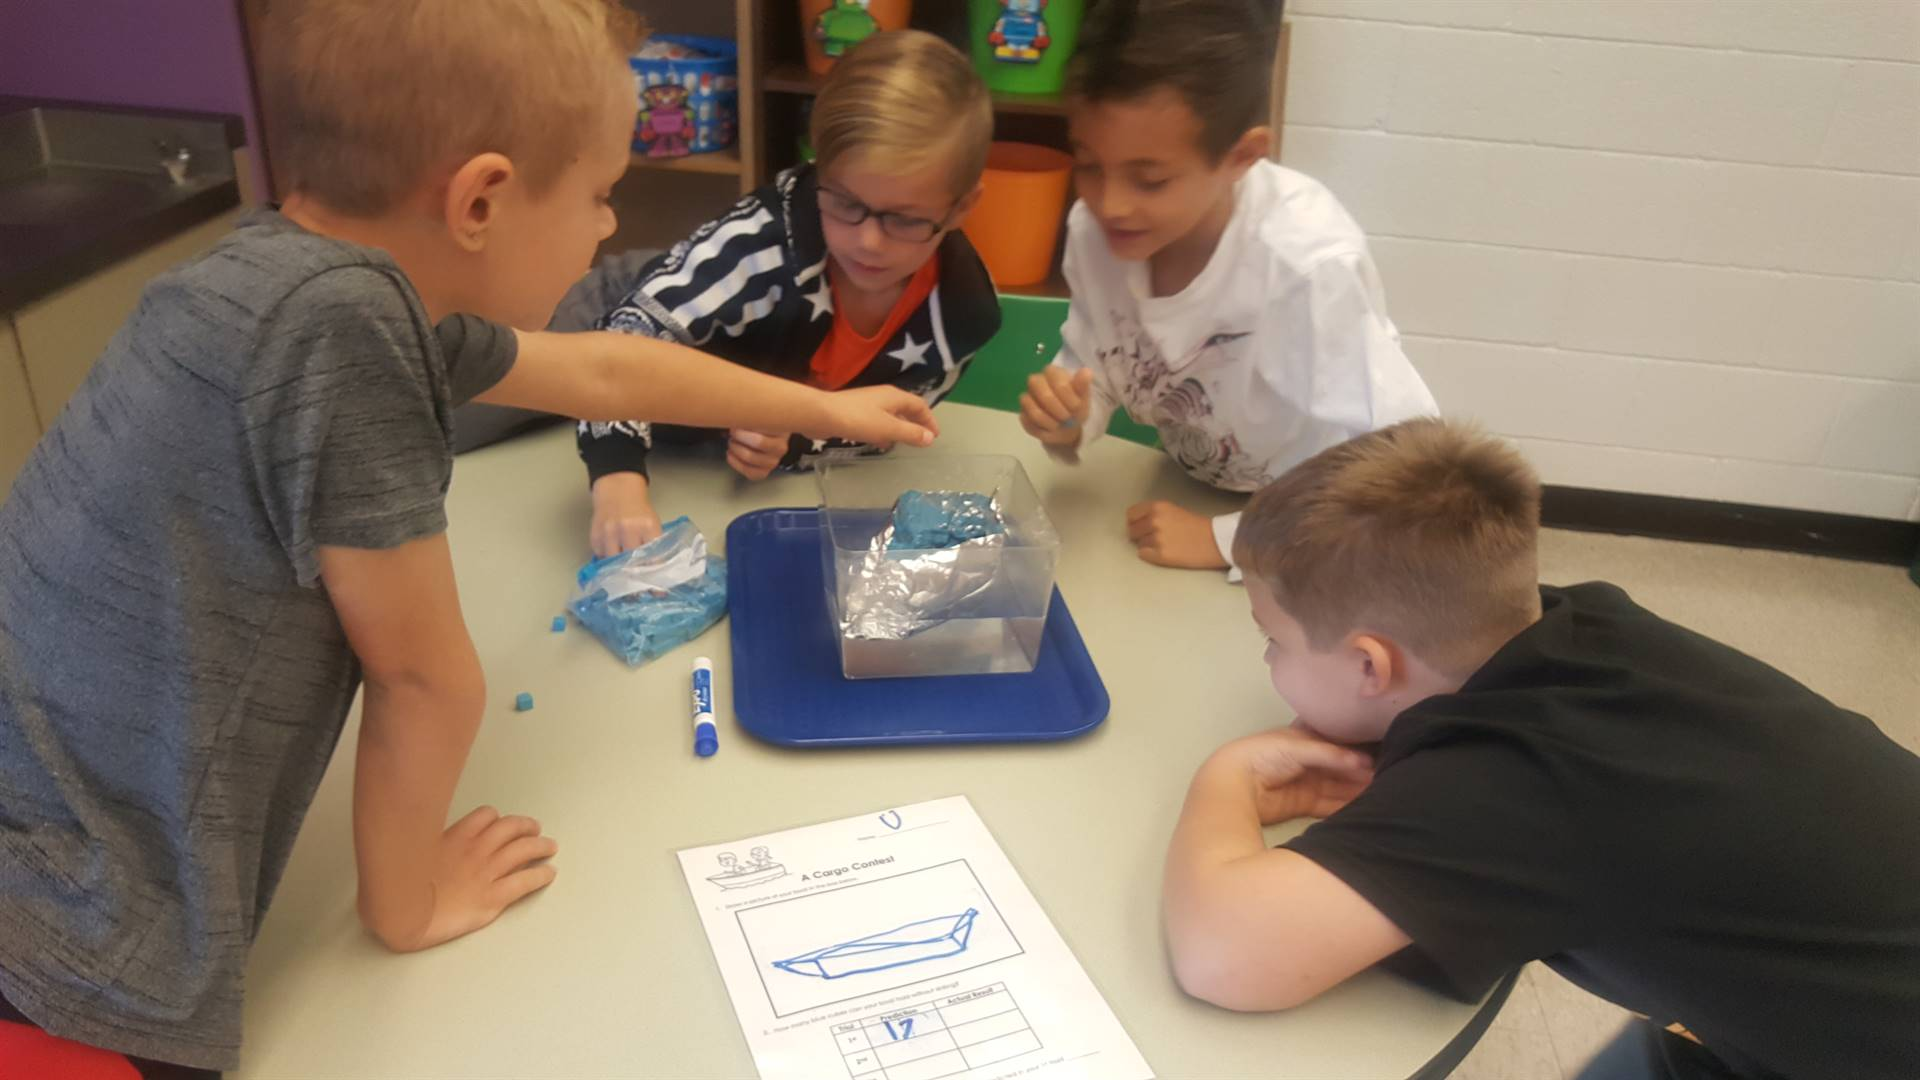 Students floating a foil boat in the water and adding small blue blocks to the boat.